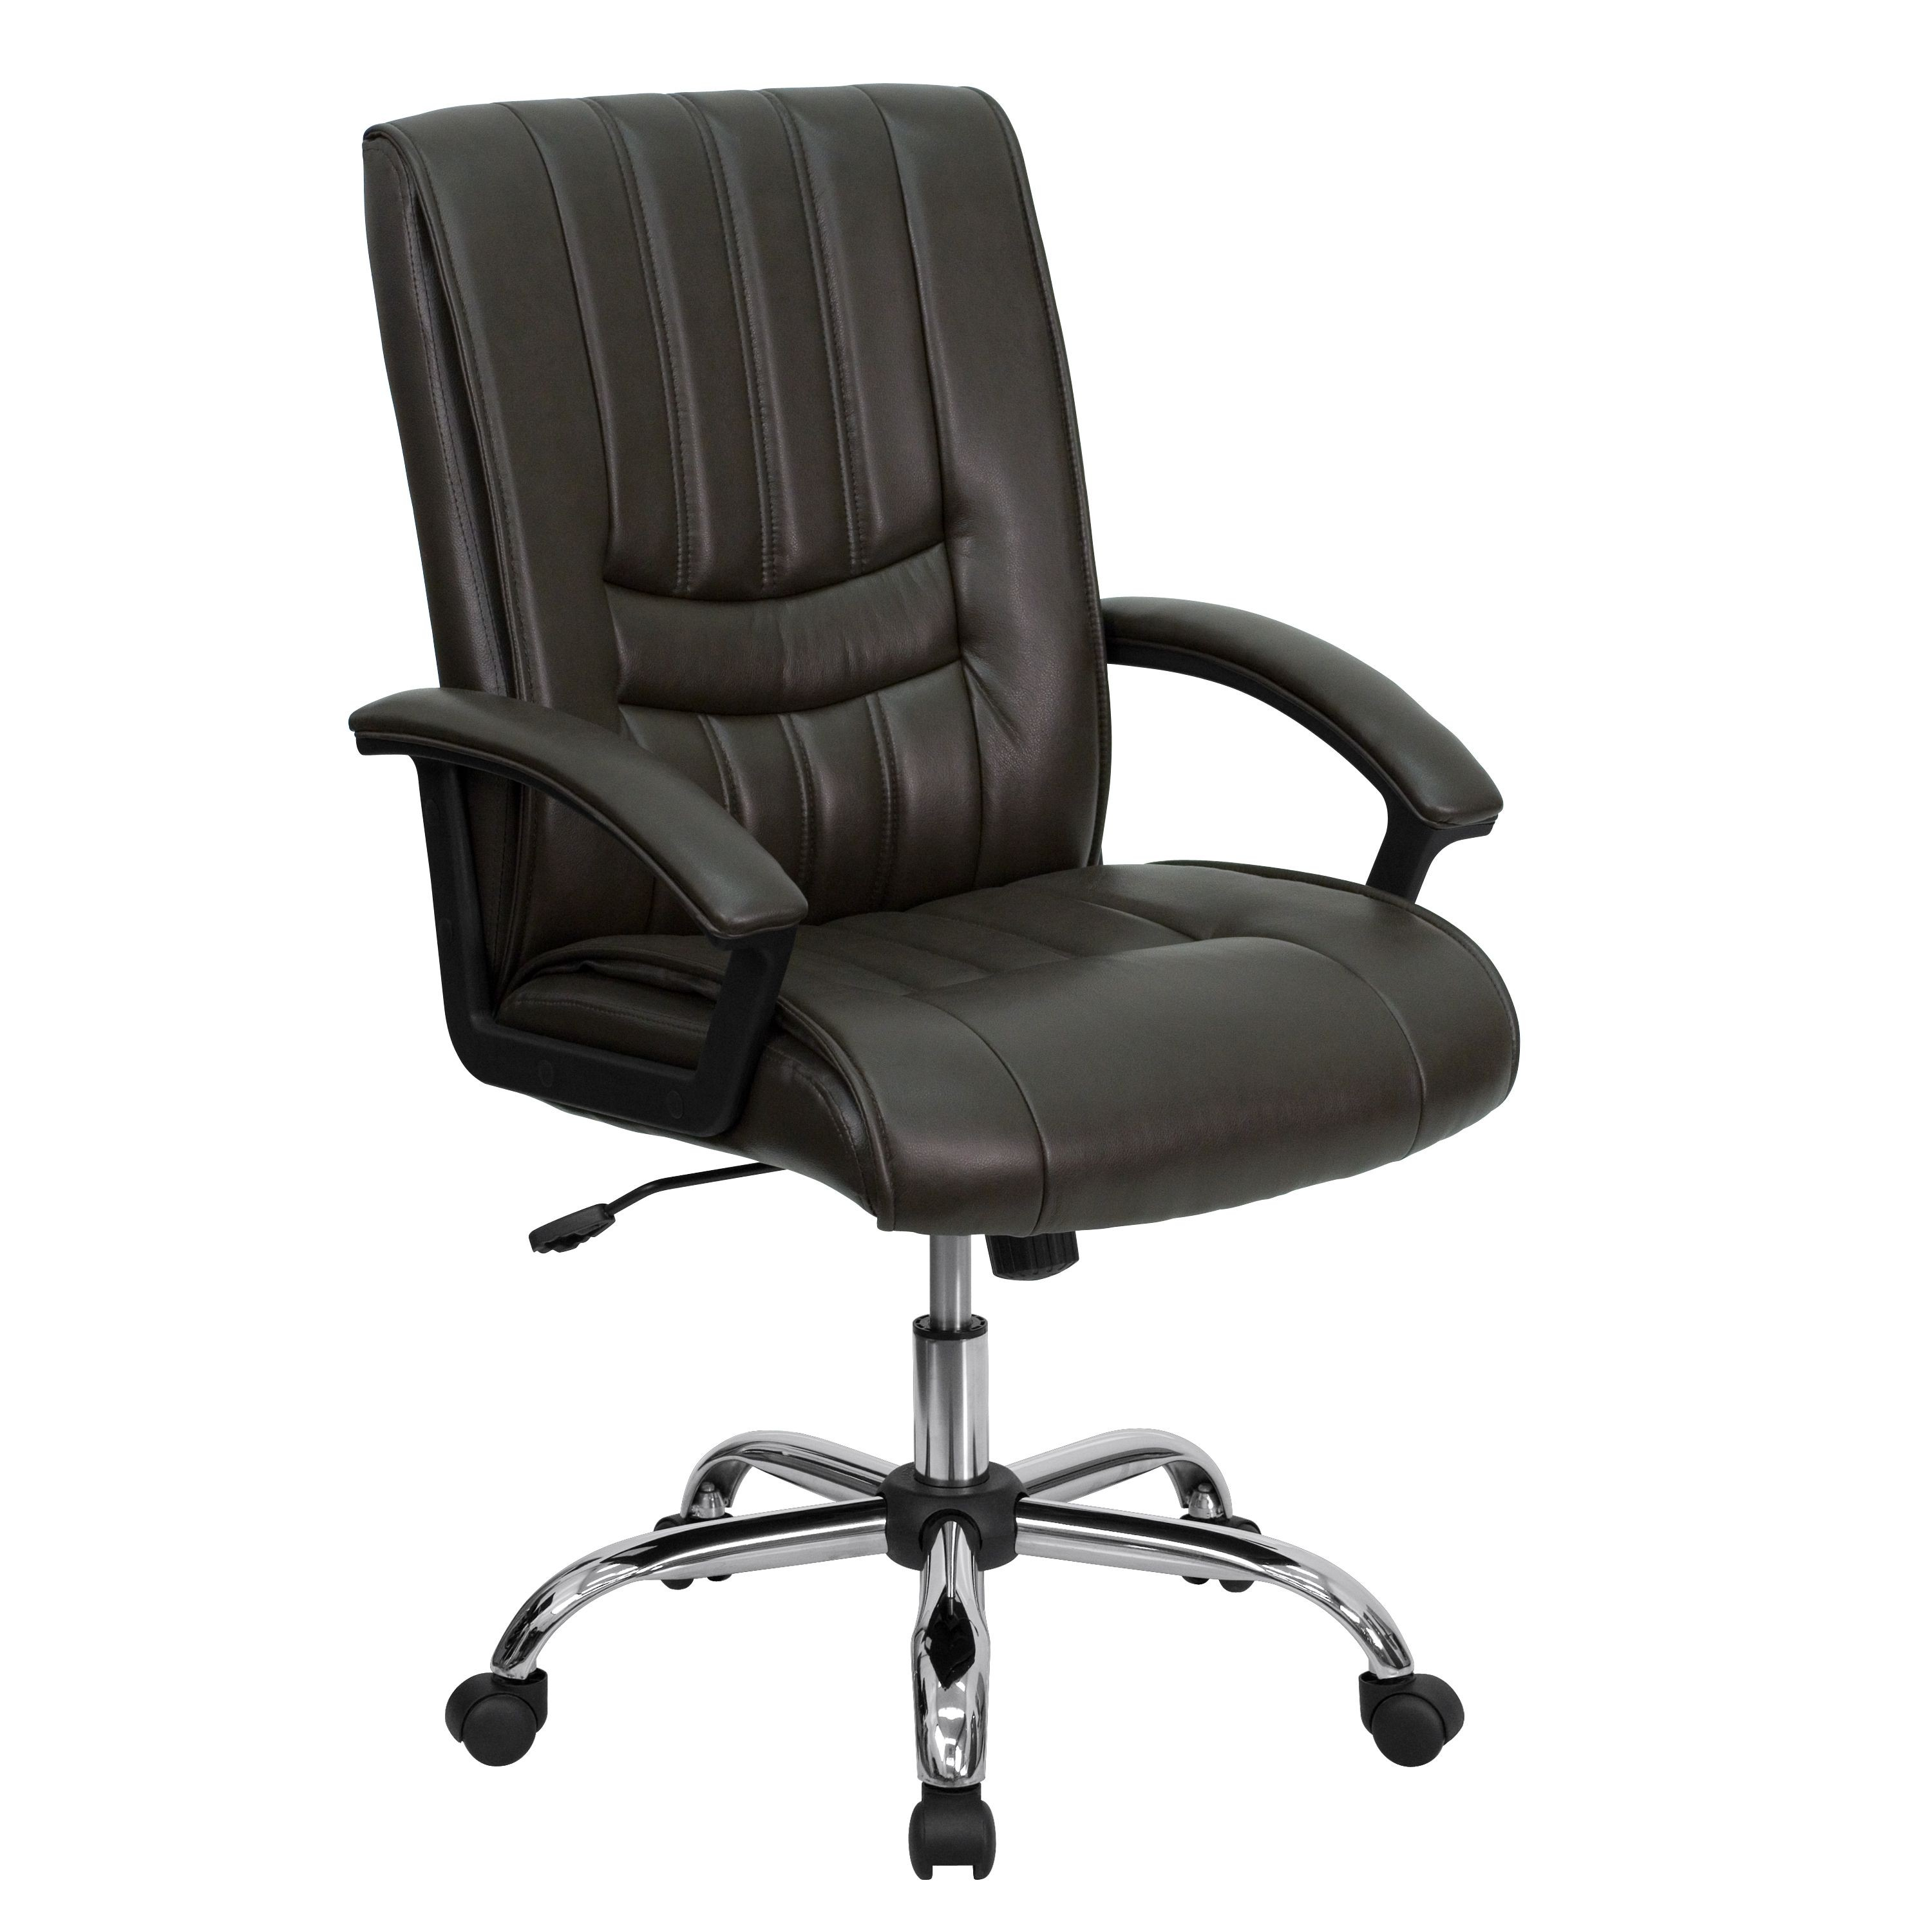 Flash Furniture BT-9076-BRN-GG Espresso Brown Leather Mid Back Leather Manager's Chair